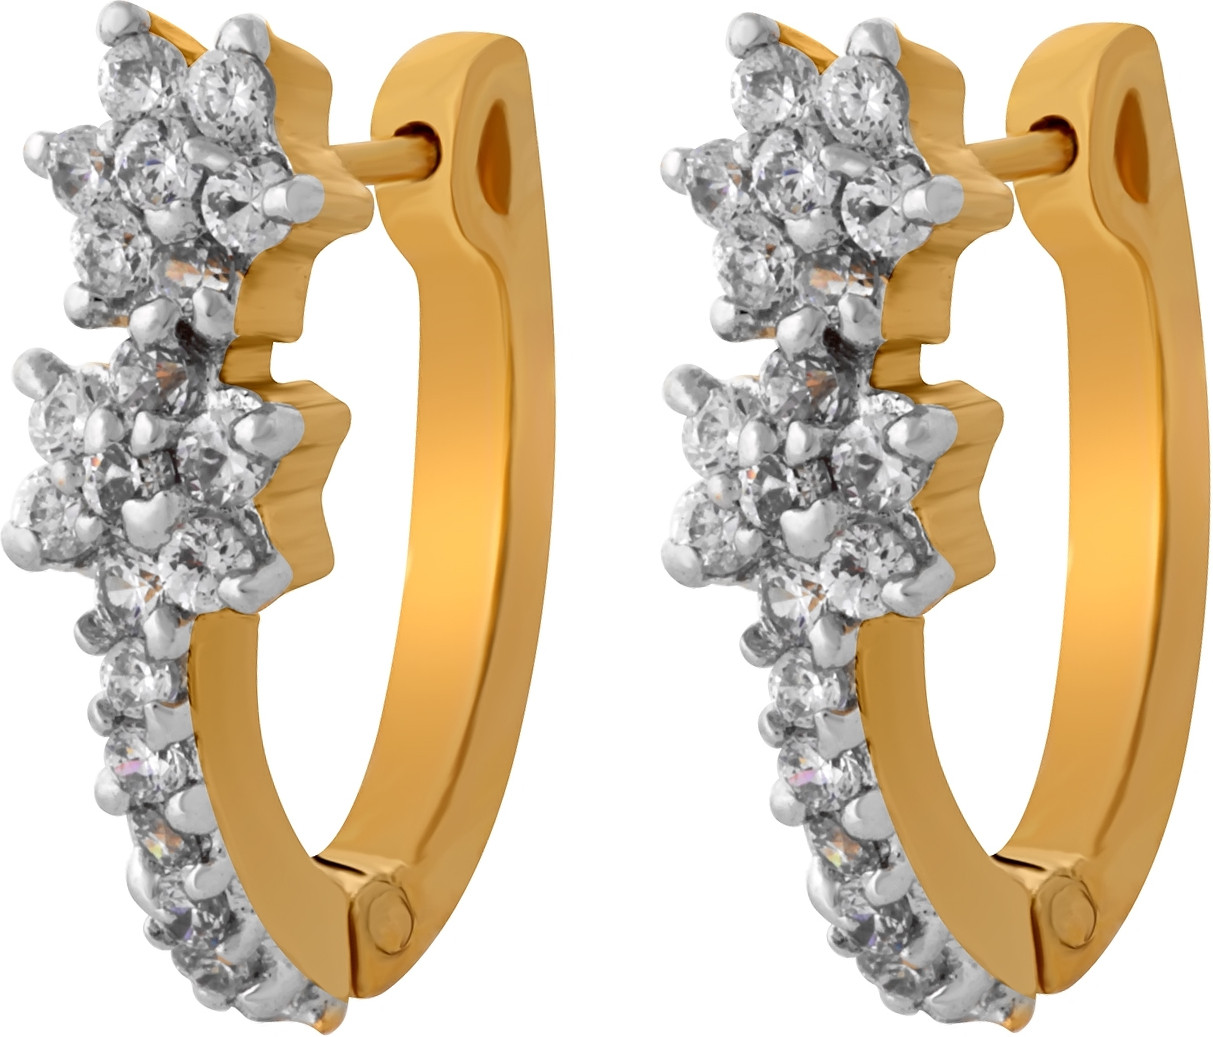 Buy online Artificial Jewellery at Flipkart.com